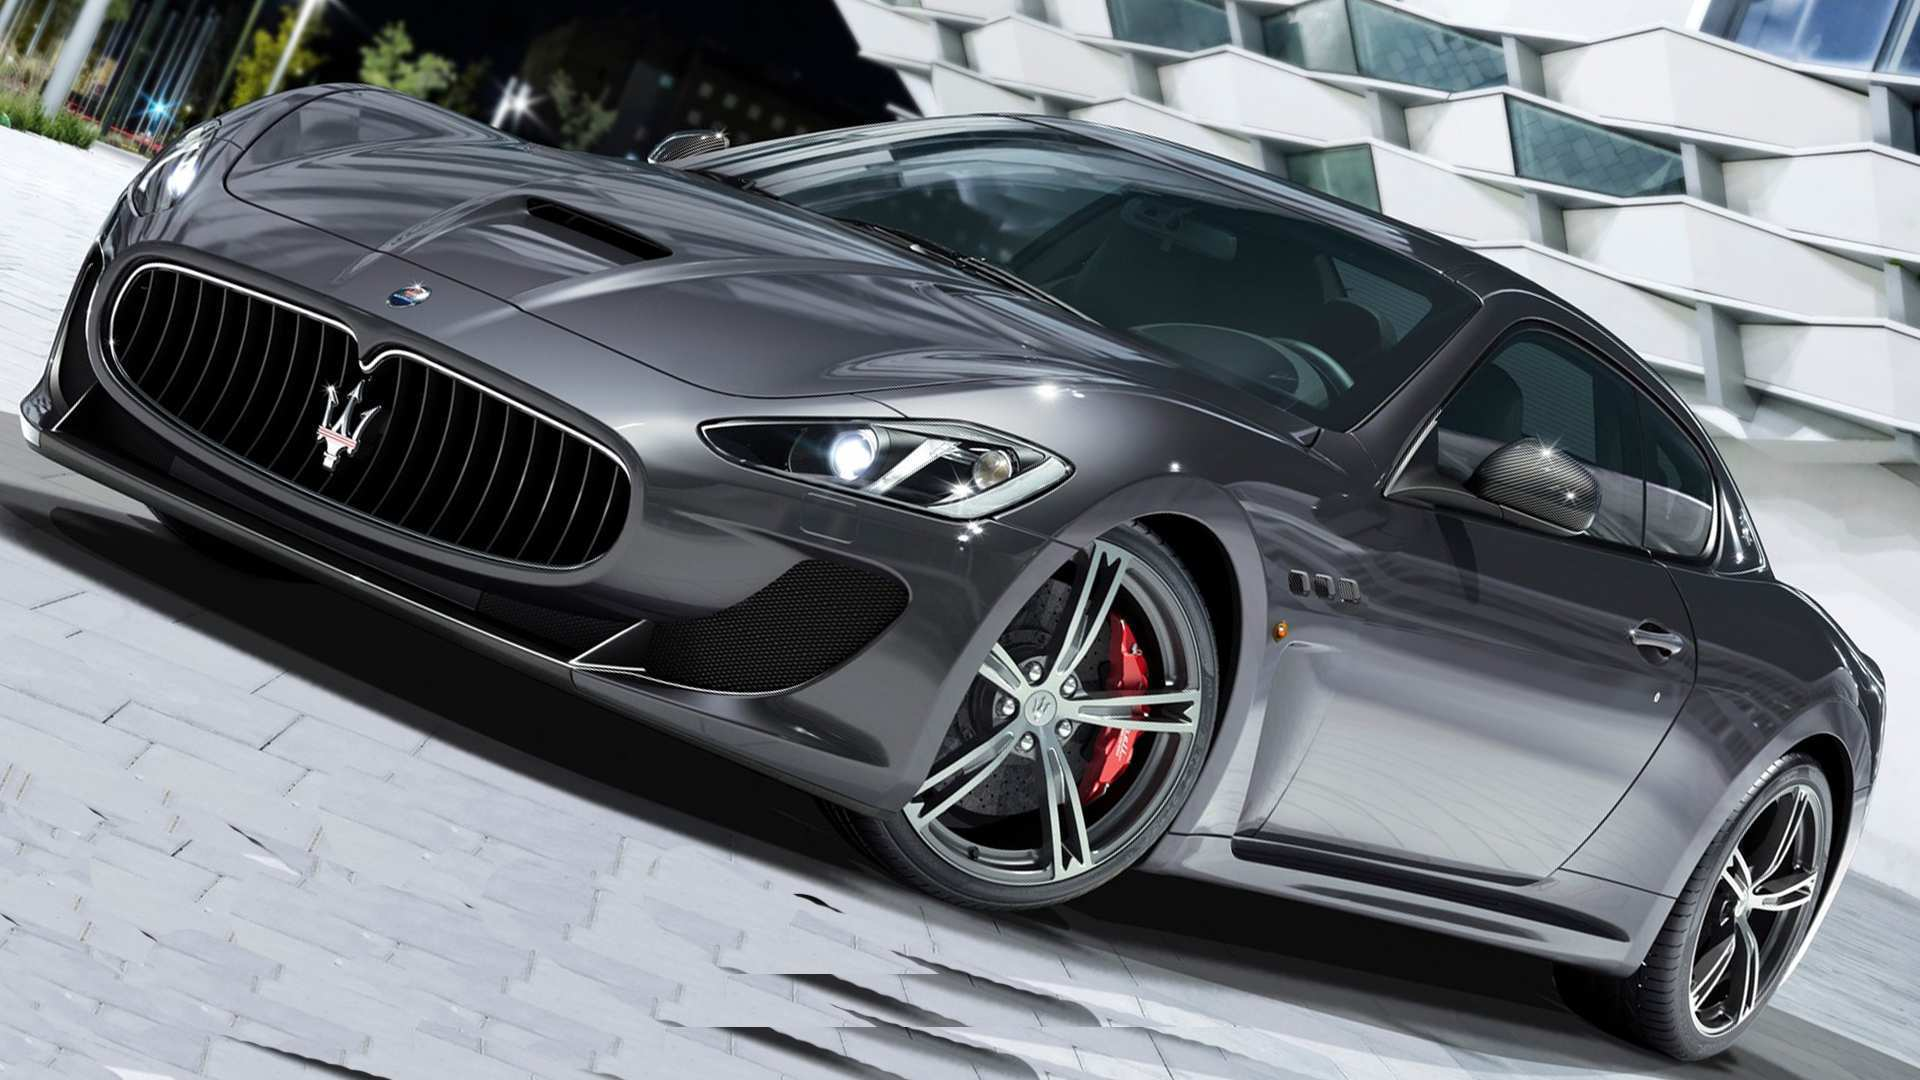 14 Great 2019 Maserati Cost Concept for 2019 Maserati Cost